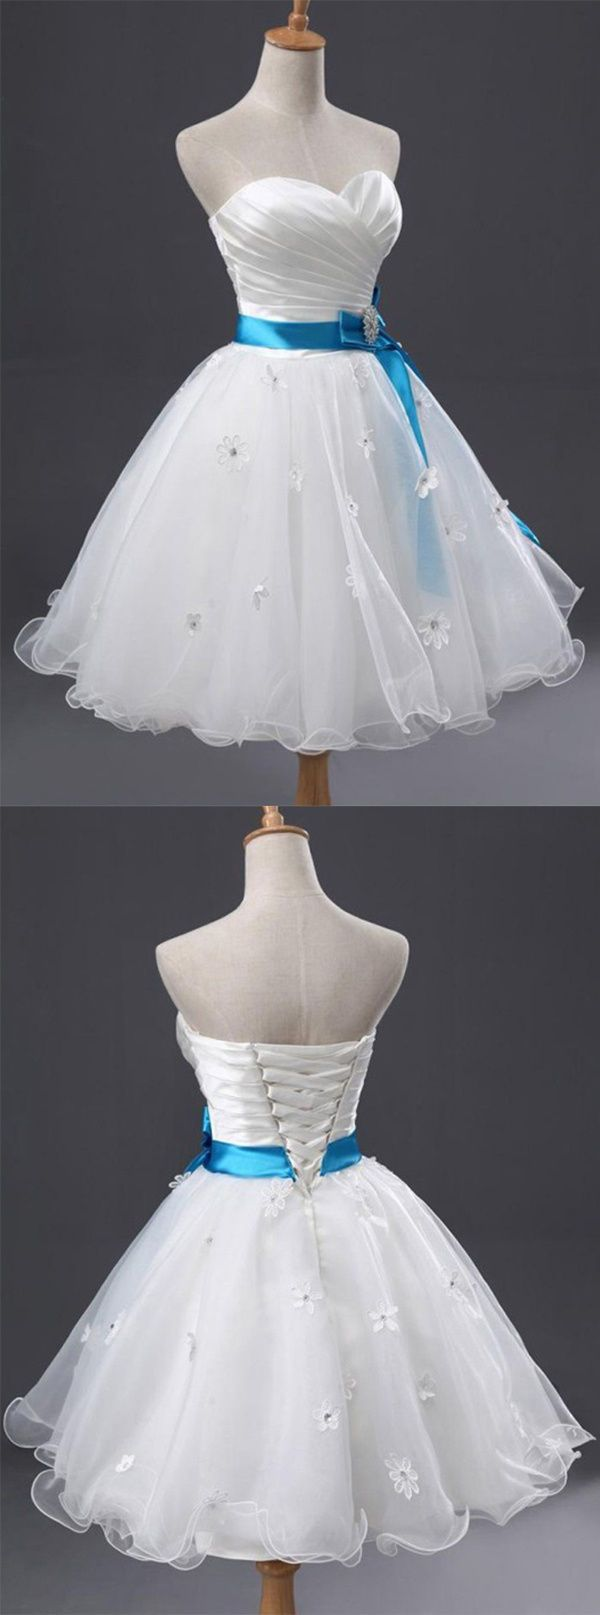 https://www.dresstells.com/ball-gown-sweetheart-short-mini-white-organza-homecoming-dress-with-appliques-ruched-sashes.html    ball gown bridesmaid dress, sweetheart evening dress, short homecoming dress, mini prom dress, homecoming dress with appliques, organza homecoming dress, homecoming dress with ruched sashes, 2016 homecoming dress, cheap homecoming dress, white homecoming dress, popular homecoming dress, #2016 #popular #white #sweetheart